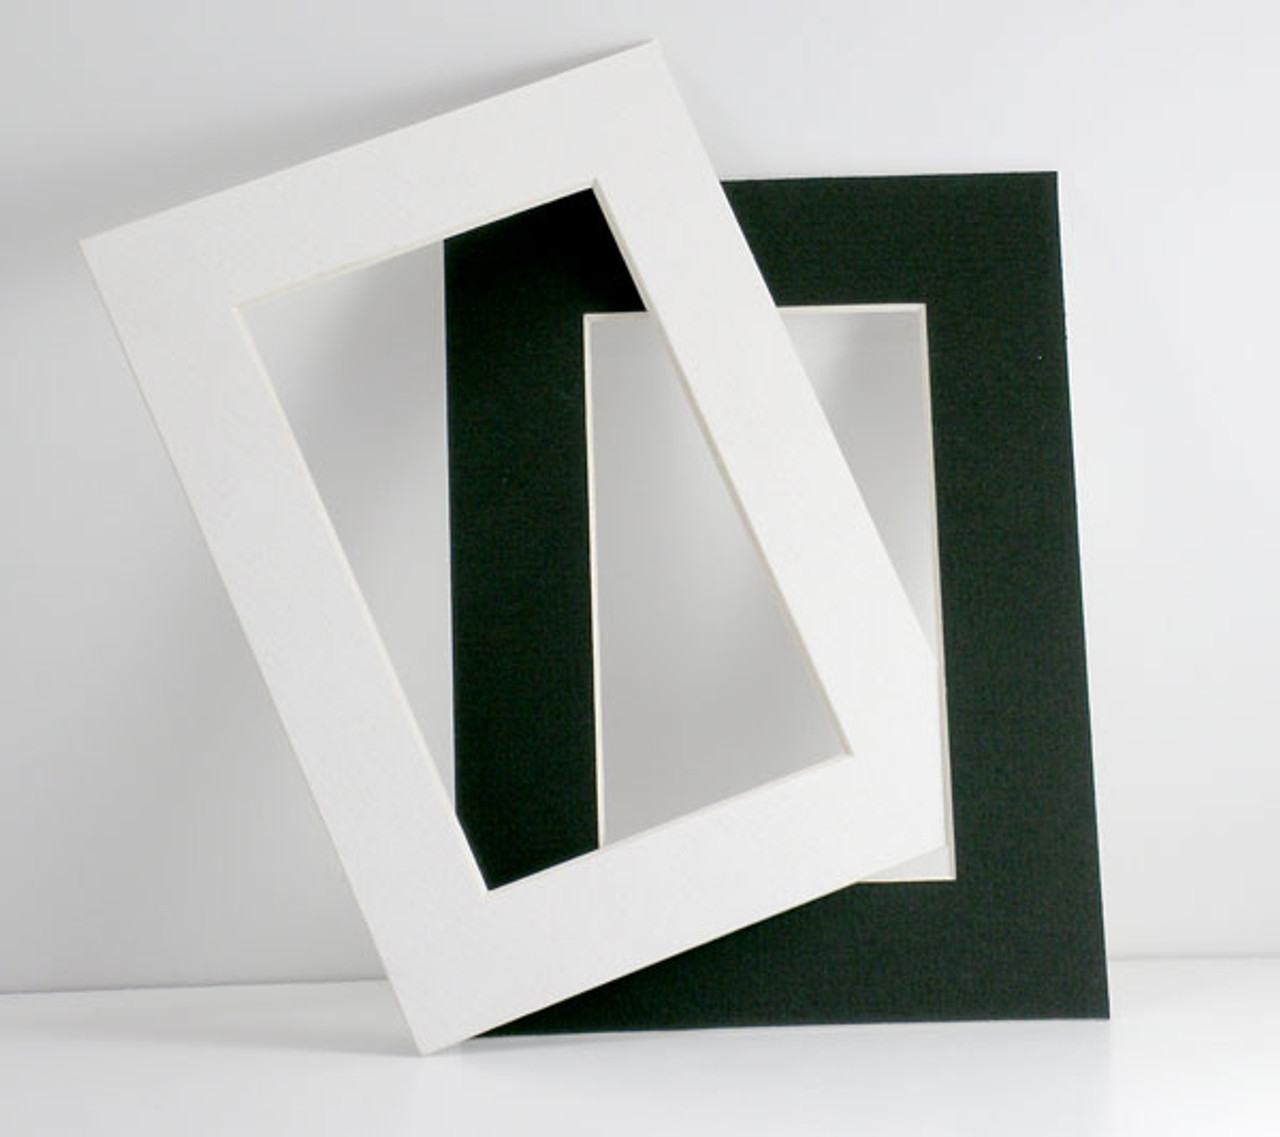 """18x24 Single 25 Pack (For Digital Sizes) (Conservation) - includes mats, 1/8"""" Acid-Free Foamcore backing, sleeves and tape!"""